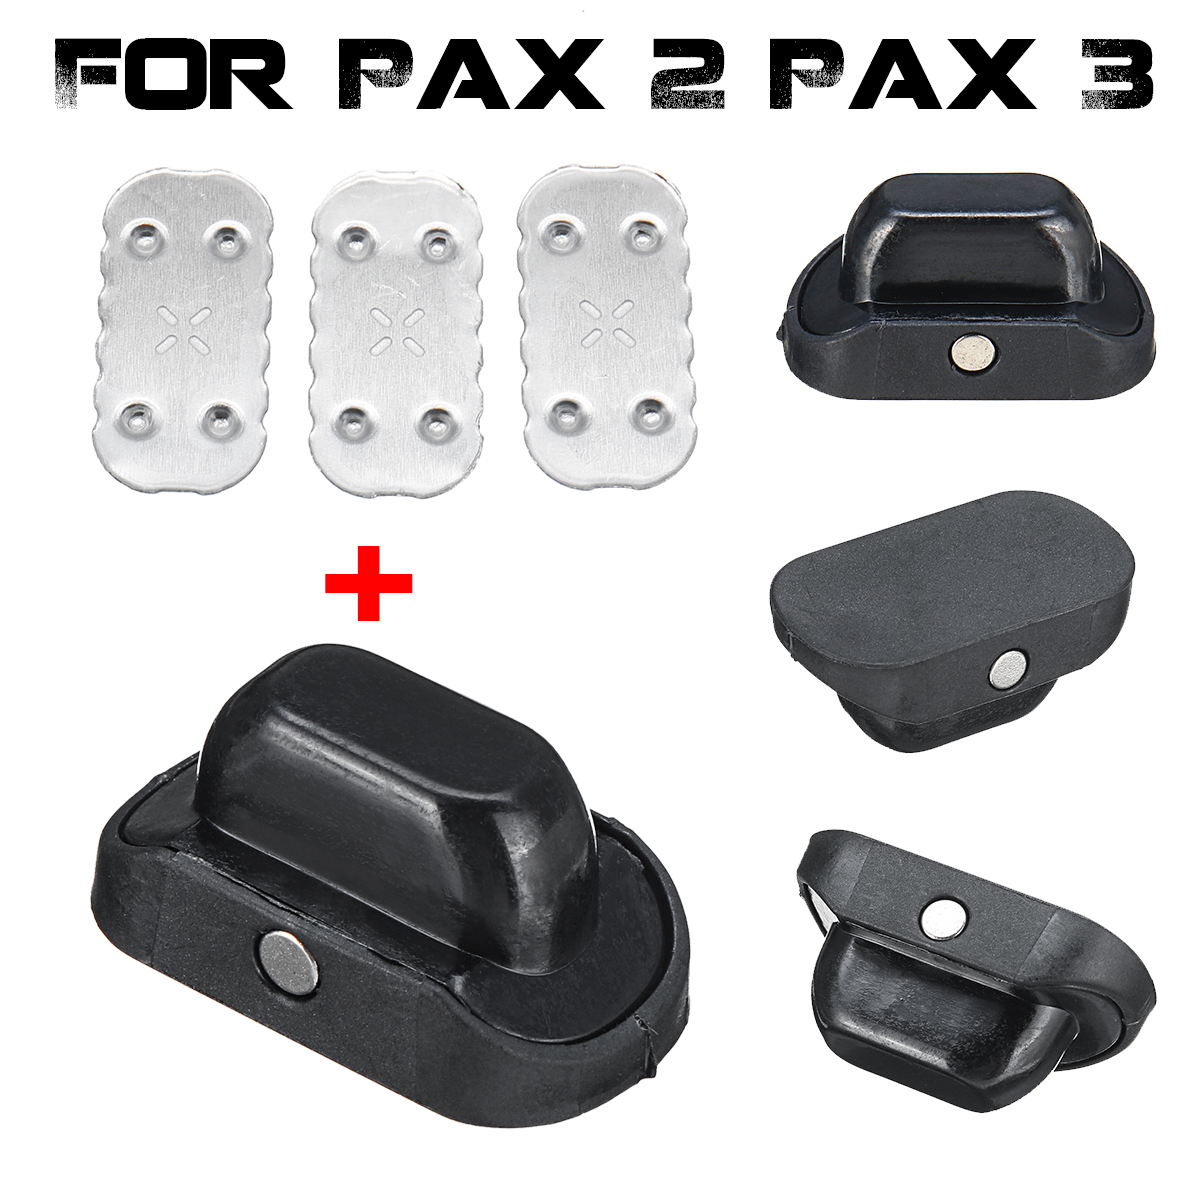 4 Pcs Half Pack Oven Lid Replacement Screens Kit Set for Pax 2/ Pa x 3 Vaporizer Home Au ...